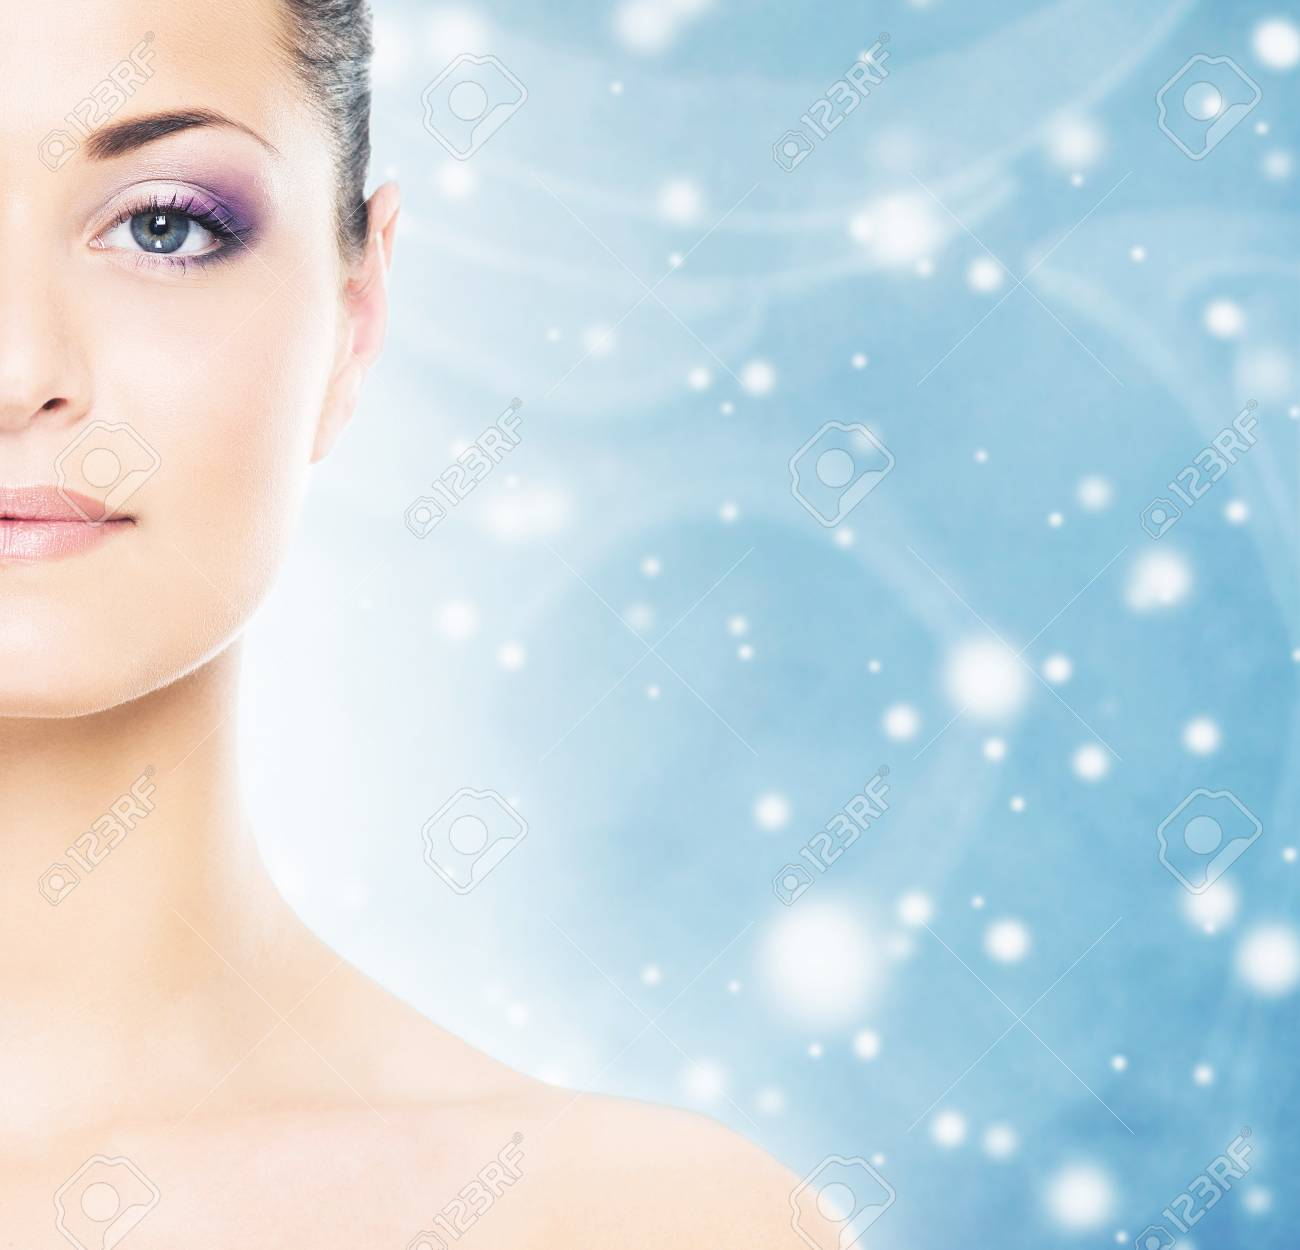 Christmas Background Portrait.Spa Portrait Of Young And Beautiful Woman Over Christmas Background